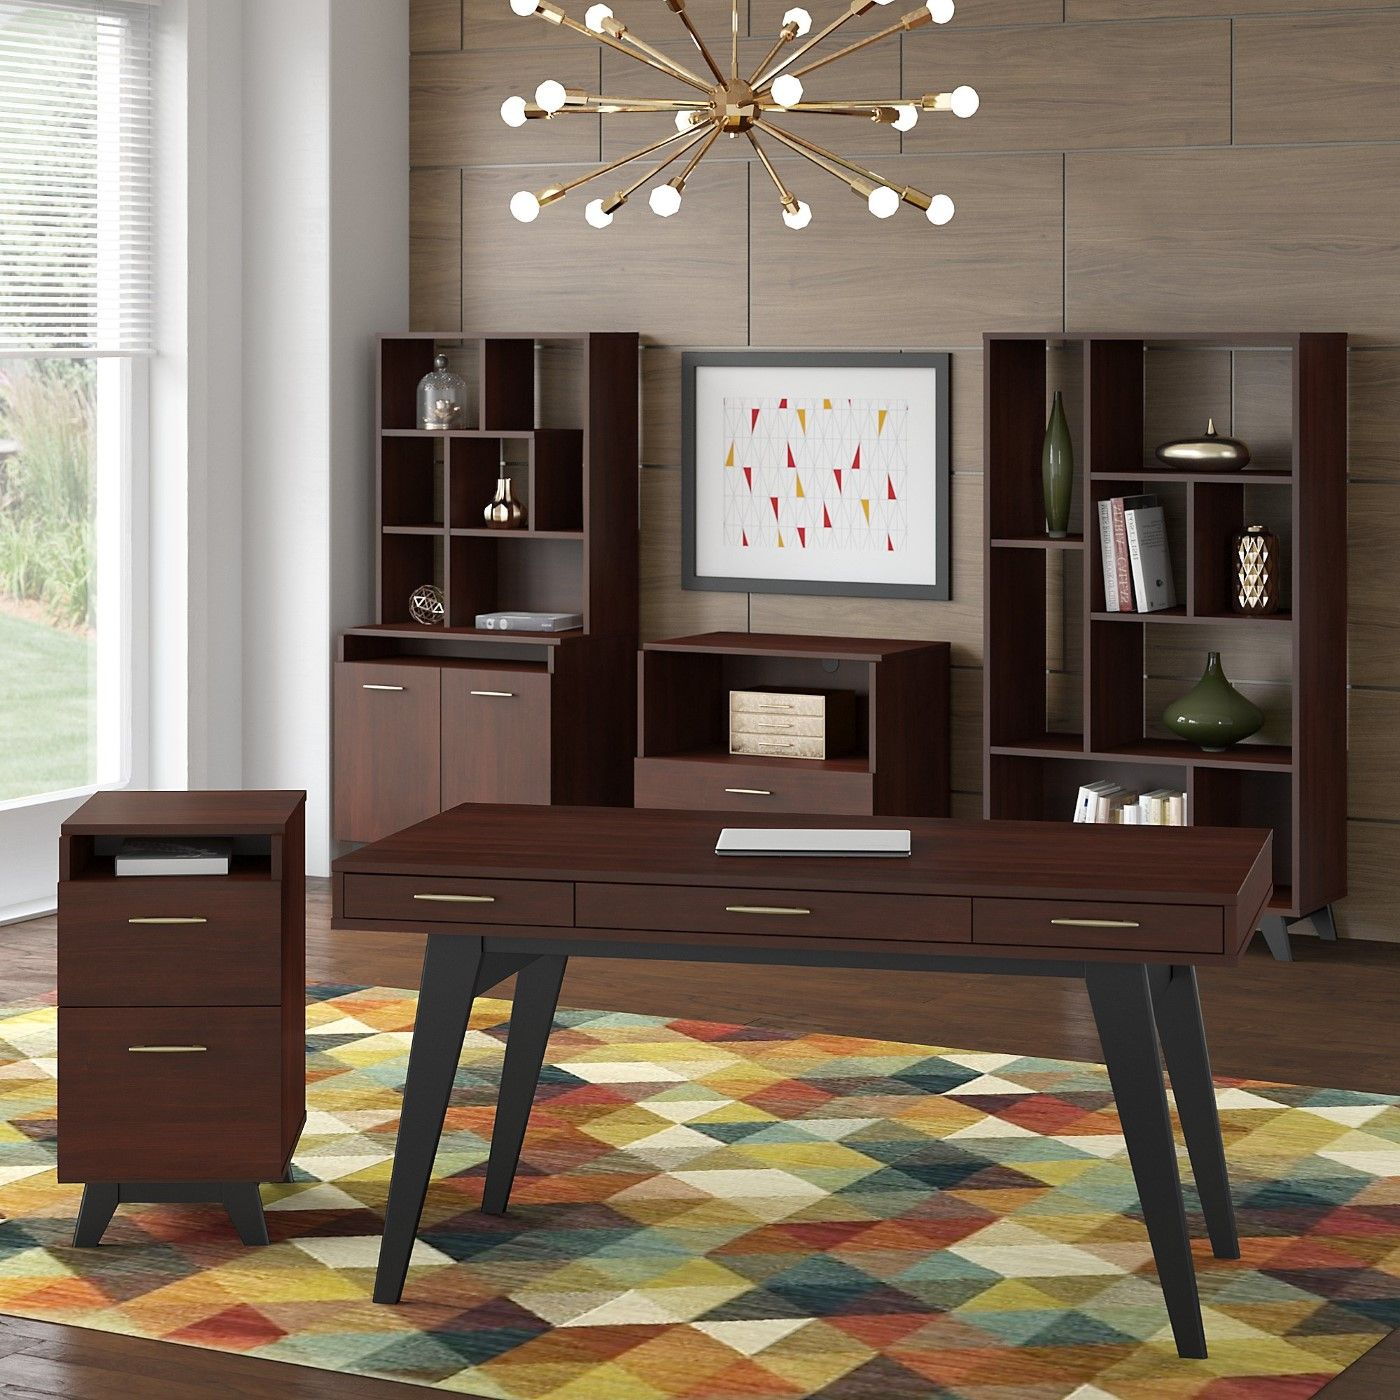 <b>kathy ireland HOME AND OFFICE FURNITURE COLLECTION SHIPS IN 4-5 BIZ DAYS:</b></font> RATING:&#11088;&#11088;&#11088;&#11088;&#11088;</b></font></b>